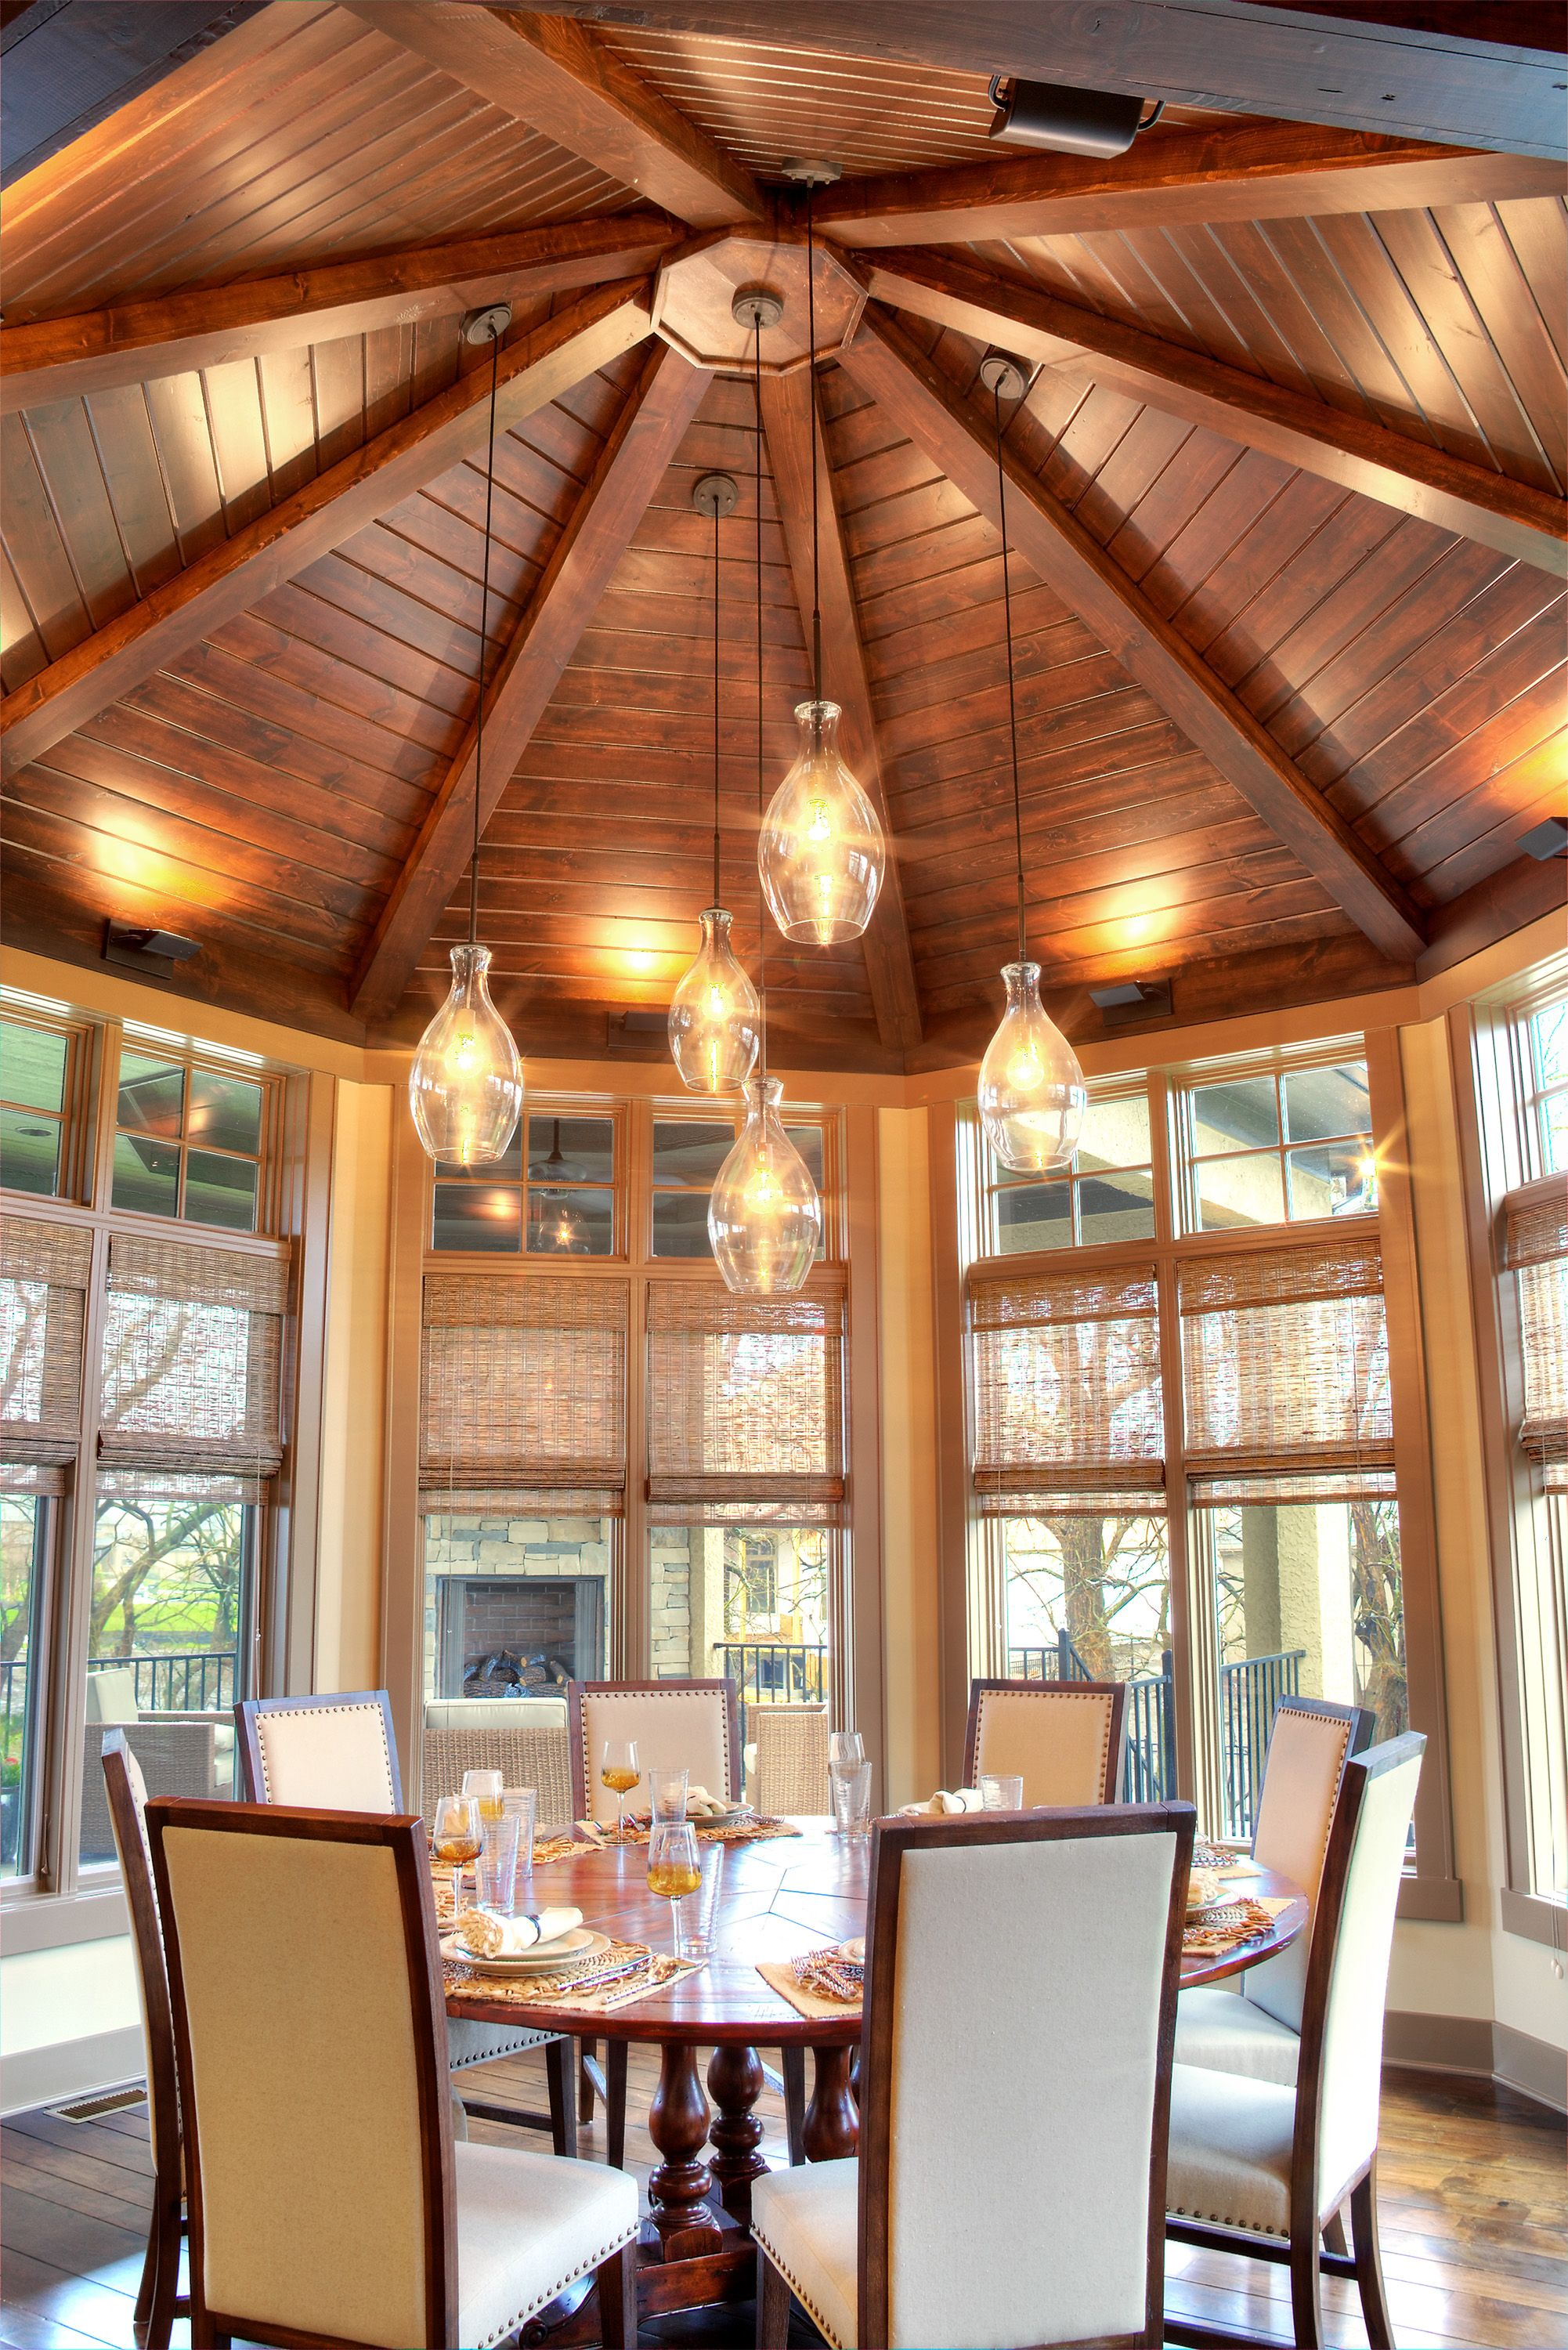 This amazing octagonal dining room with a vaulted wood for Wood vaulted ceiling